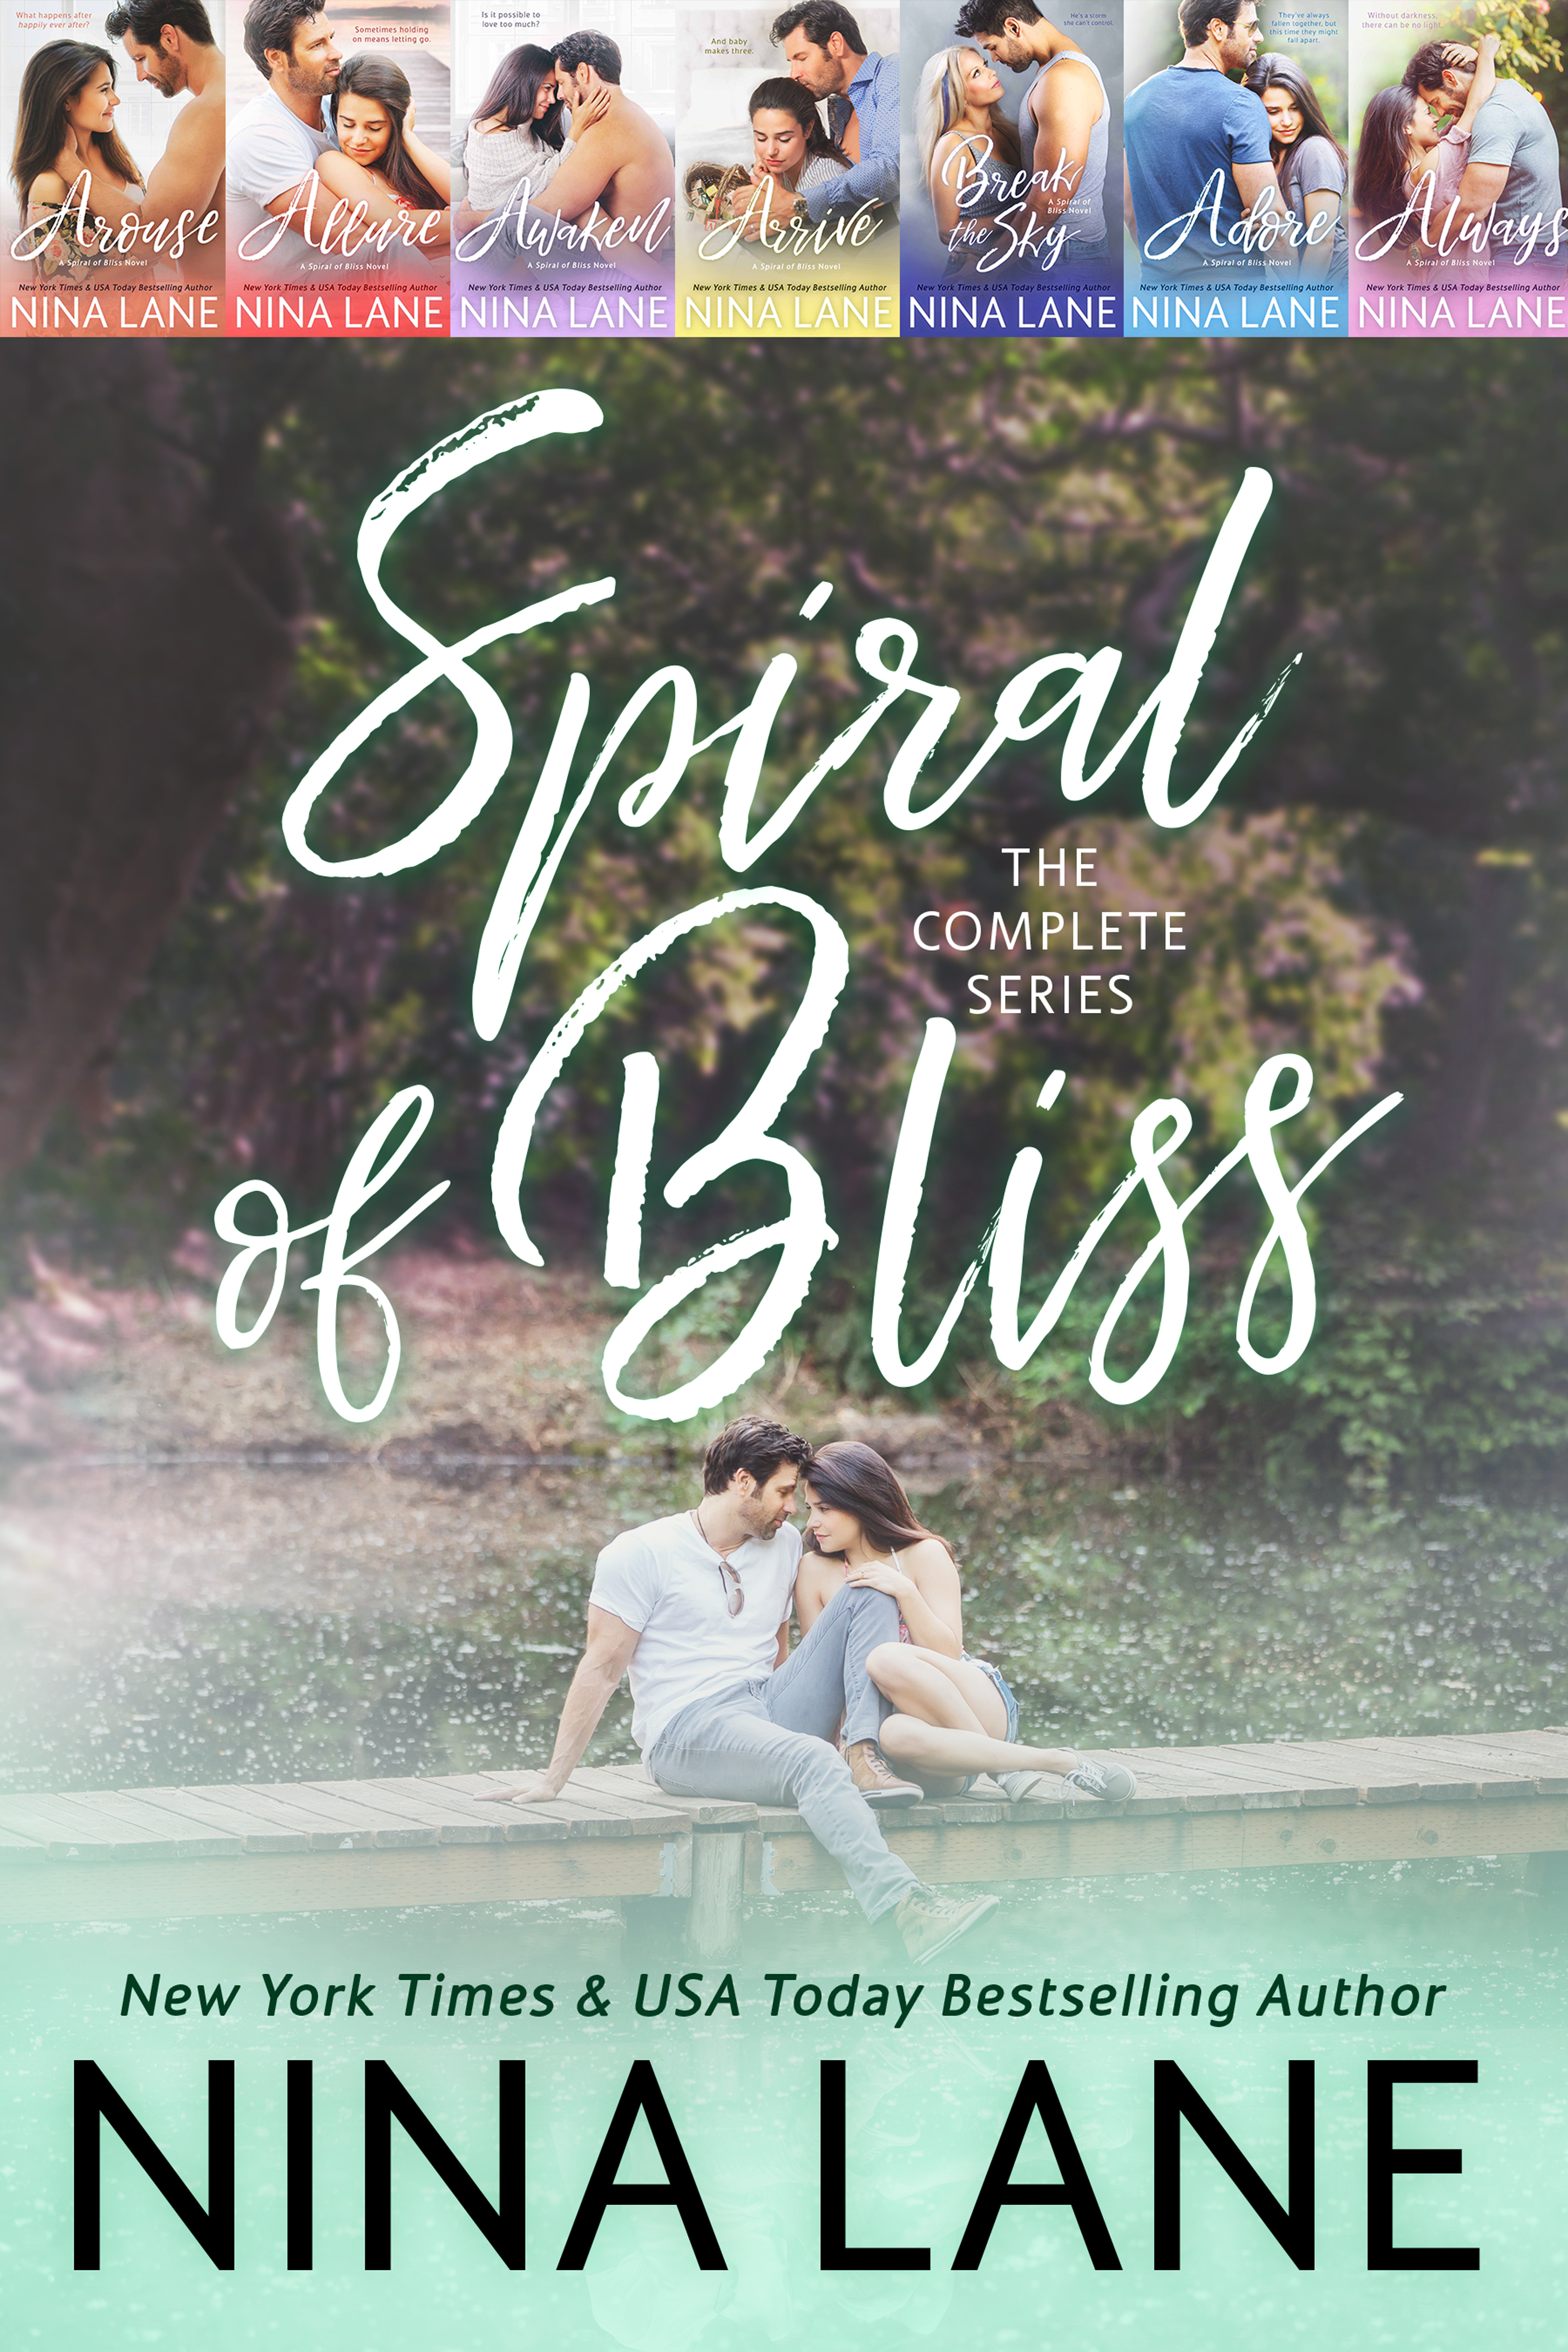 Spiral of Bliss: The Complete Boxed Set (Spiral of Bliss, #1-5)